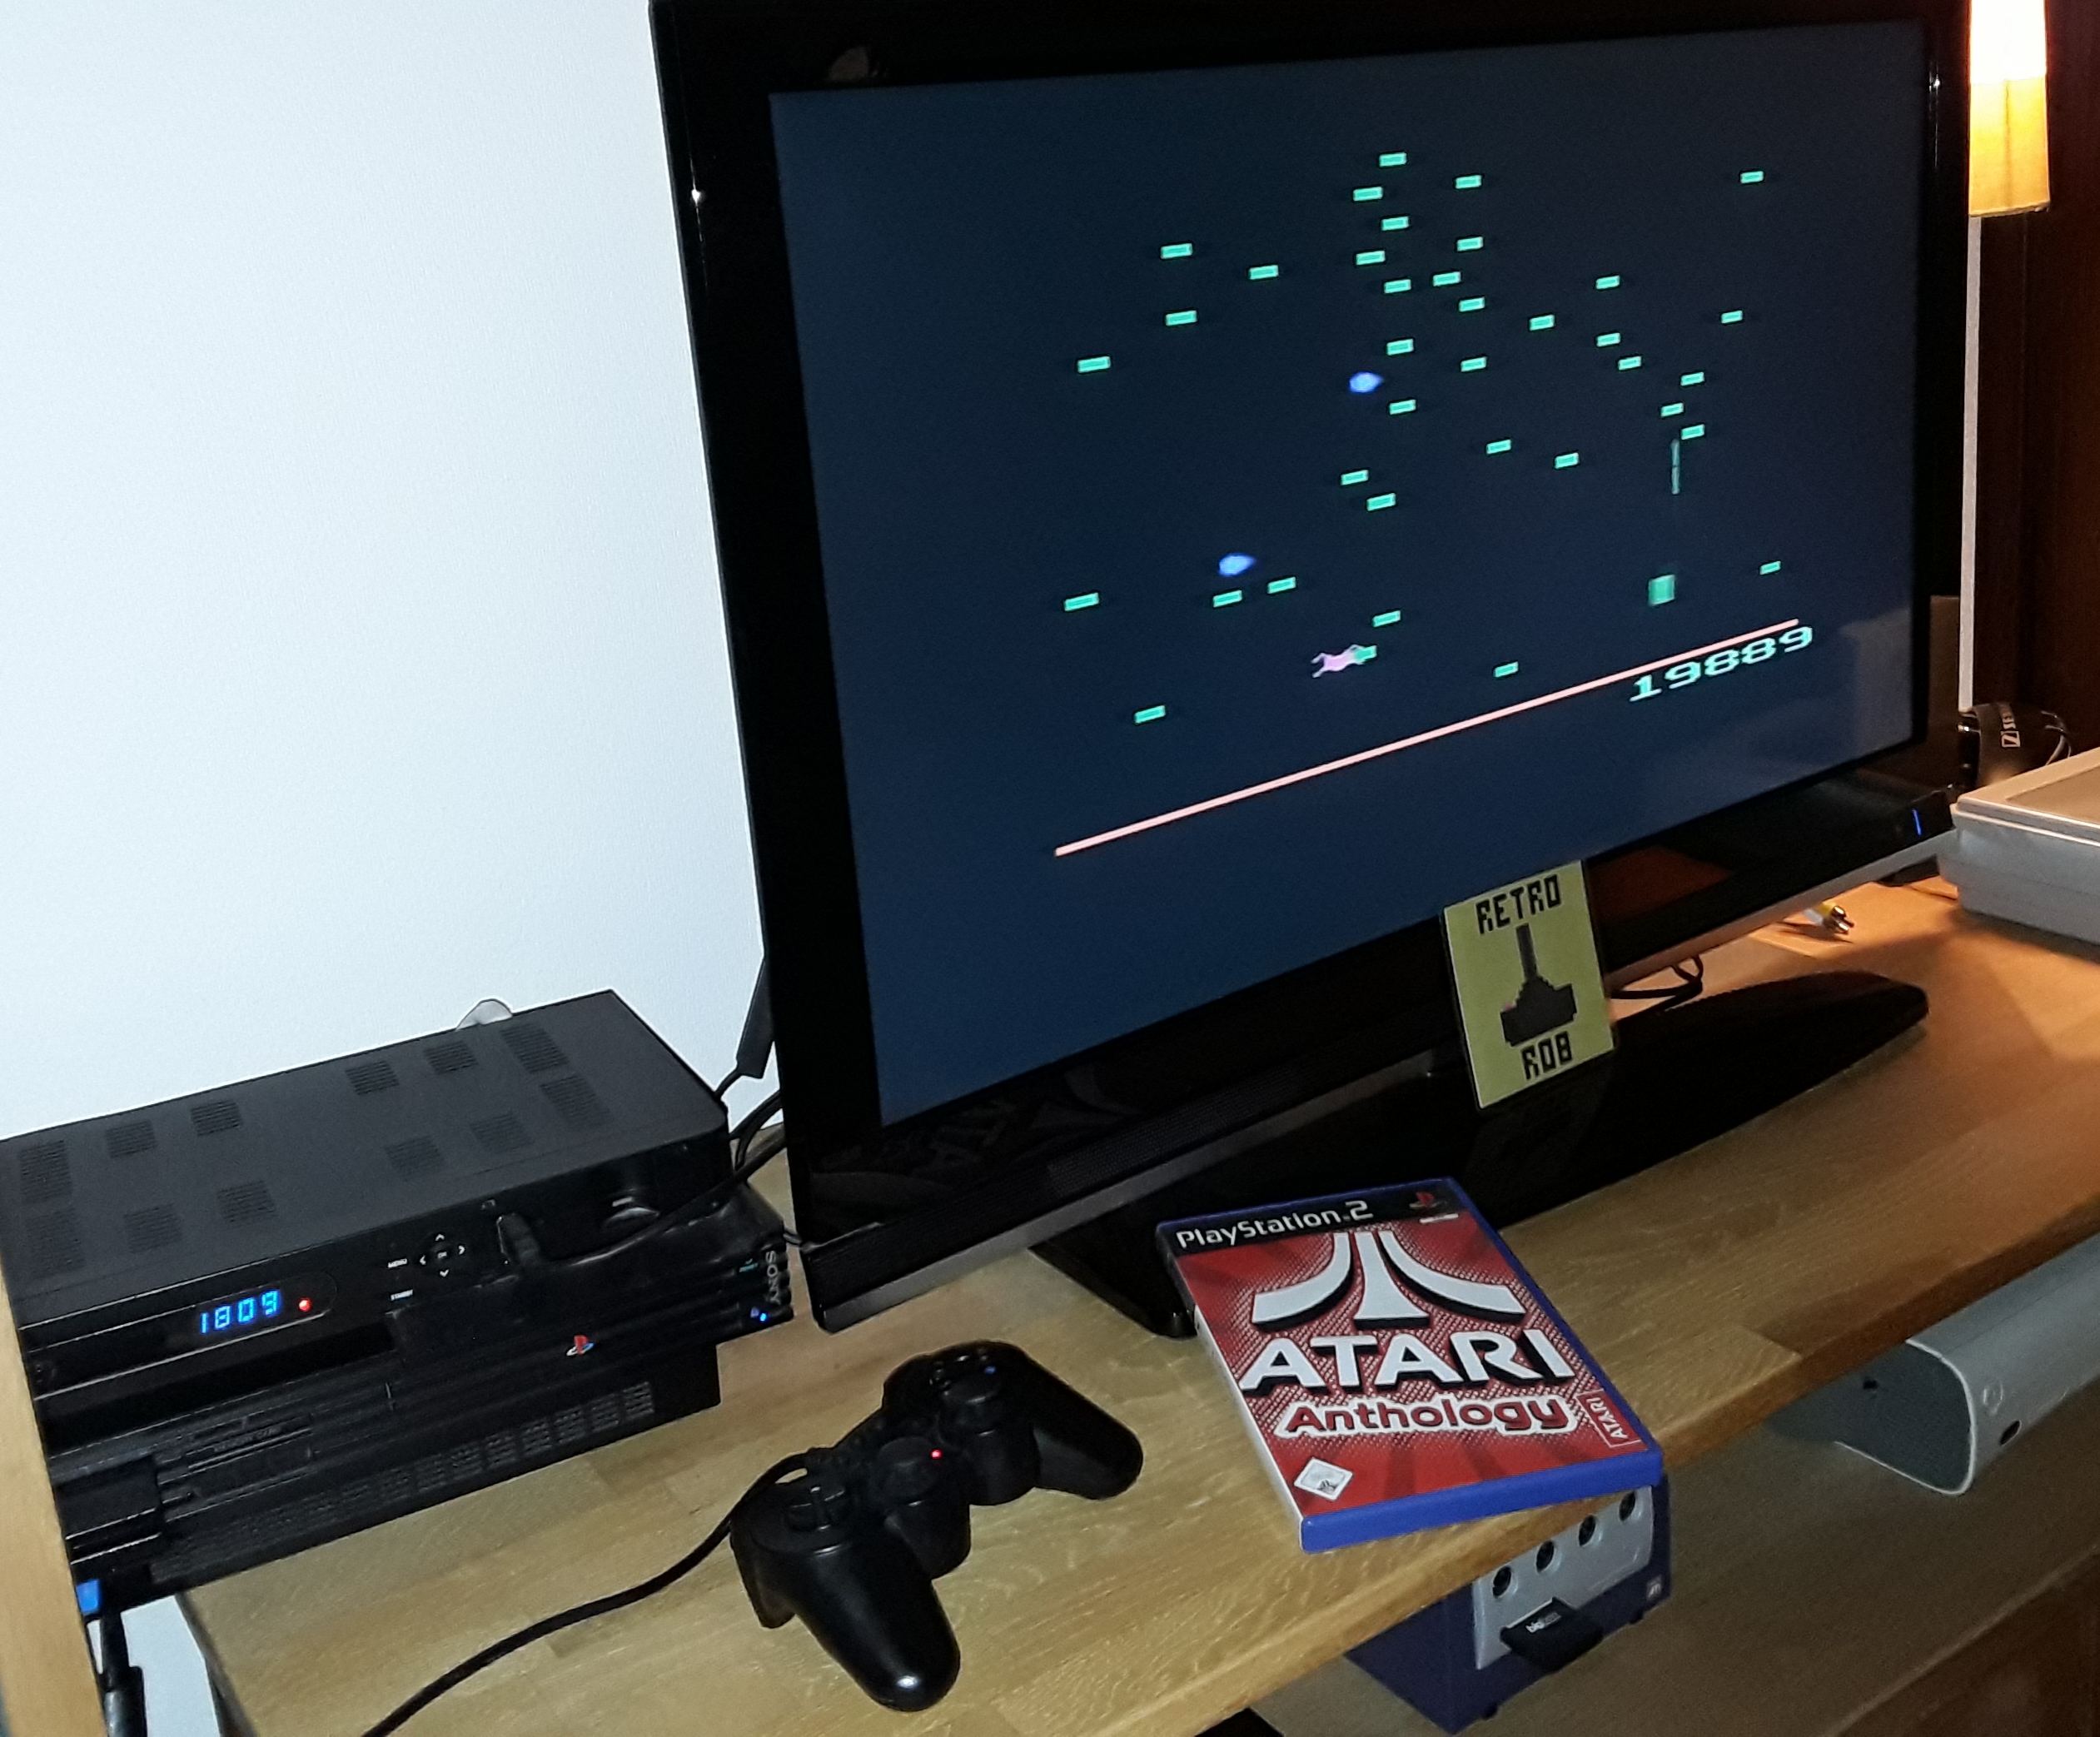 RetroRob: Atari Anthology: Centipede - Home Version (Playstation 2) 19,889 points on 2019-01-29 11:12:30